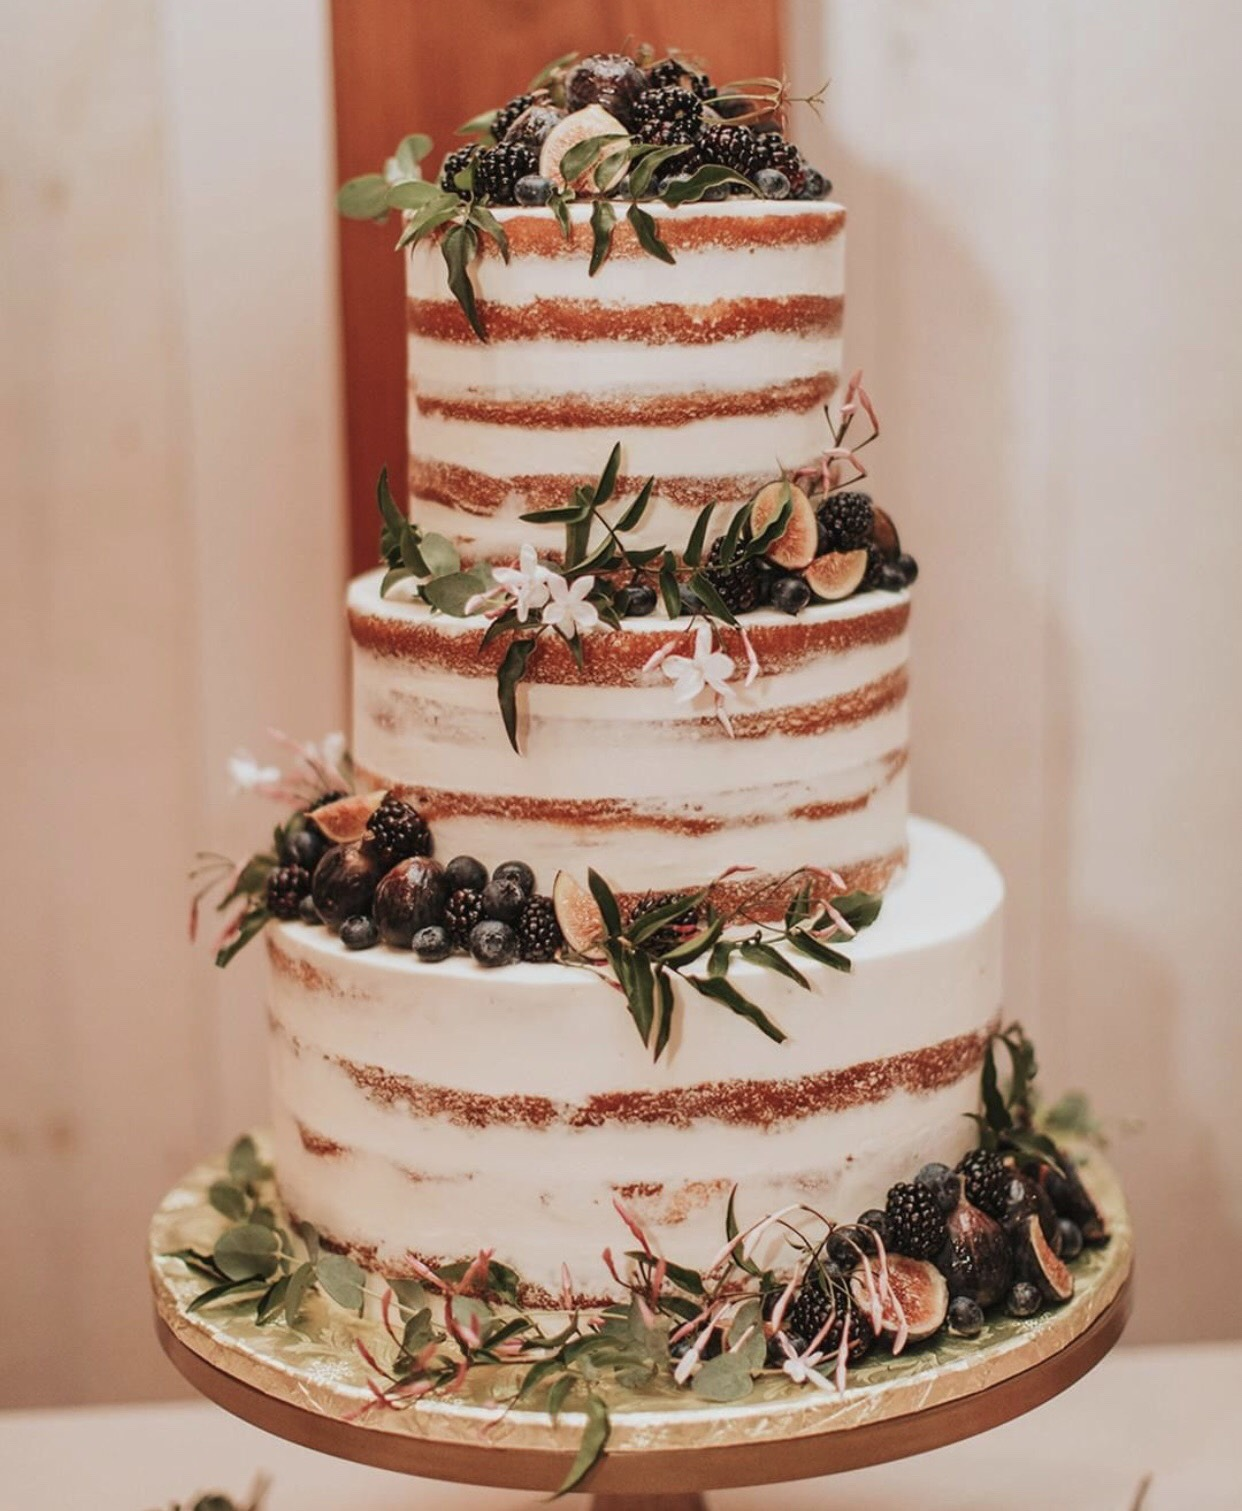 Rustic cake perfection. 🍰🌿👌🏼🏩🌳🌳 Bakery:  @freeportbakery  | Photo:  @victoriacarlsonphoto  | Coordination:  @withgraceandloveevents  |  Florals:  @bewilderfloral